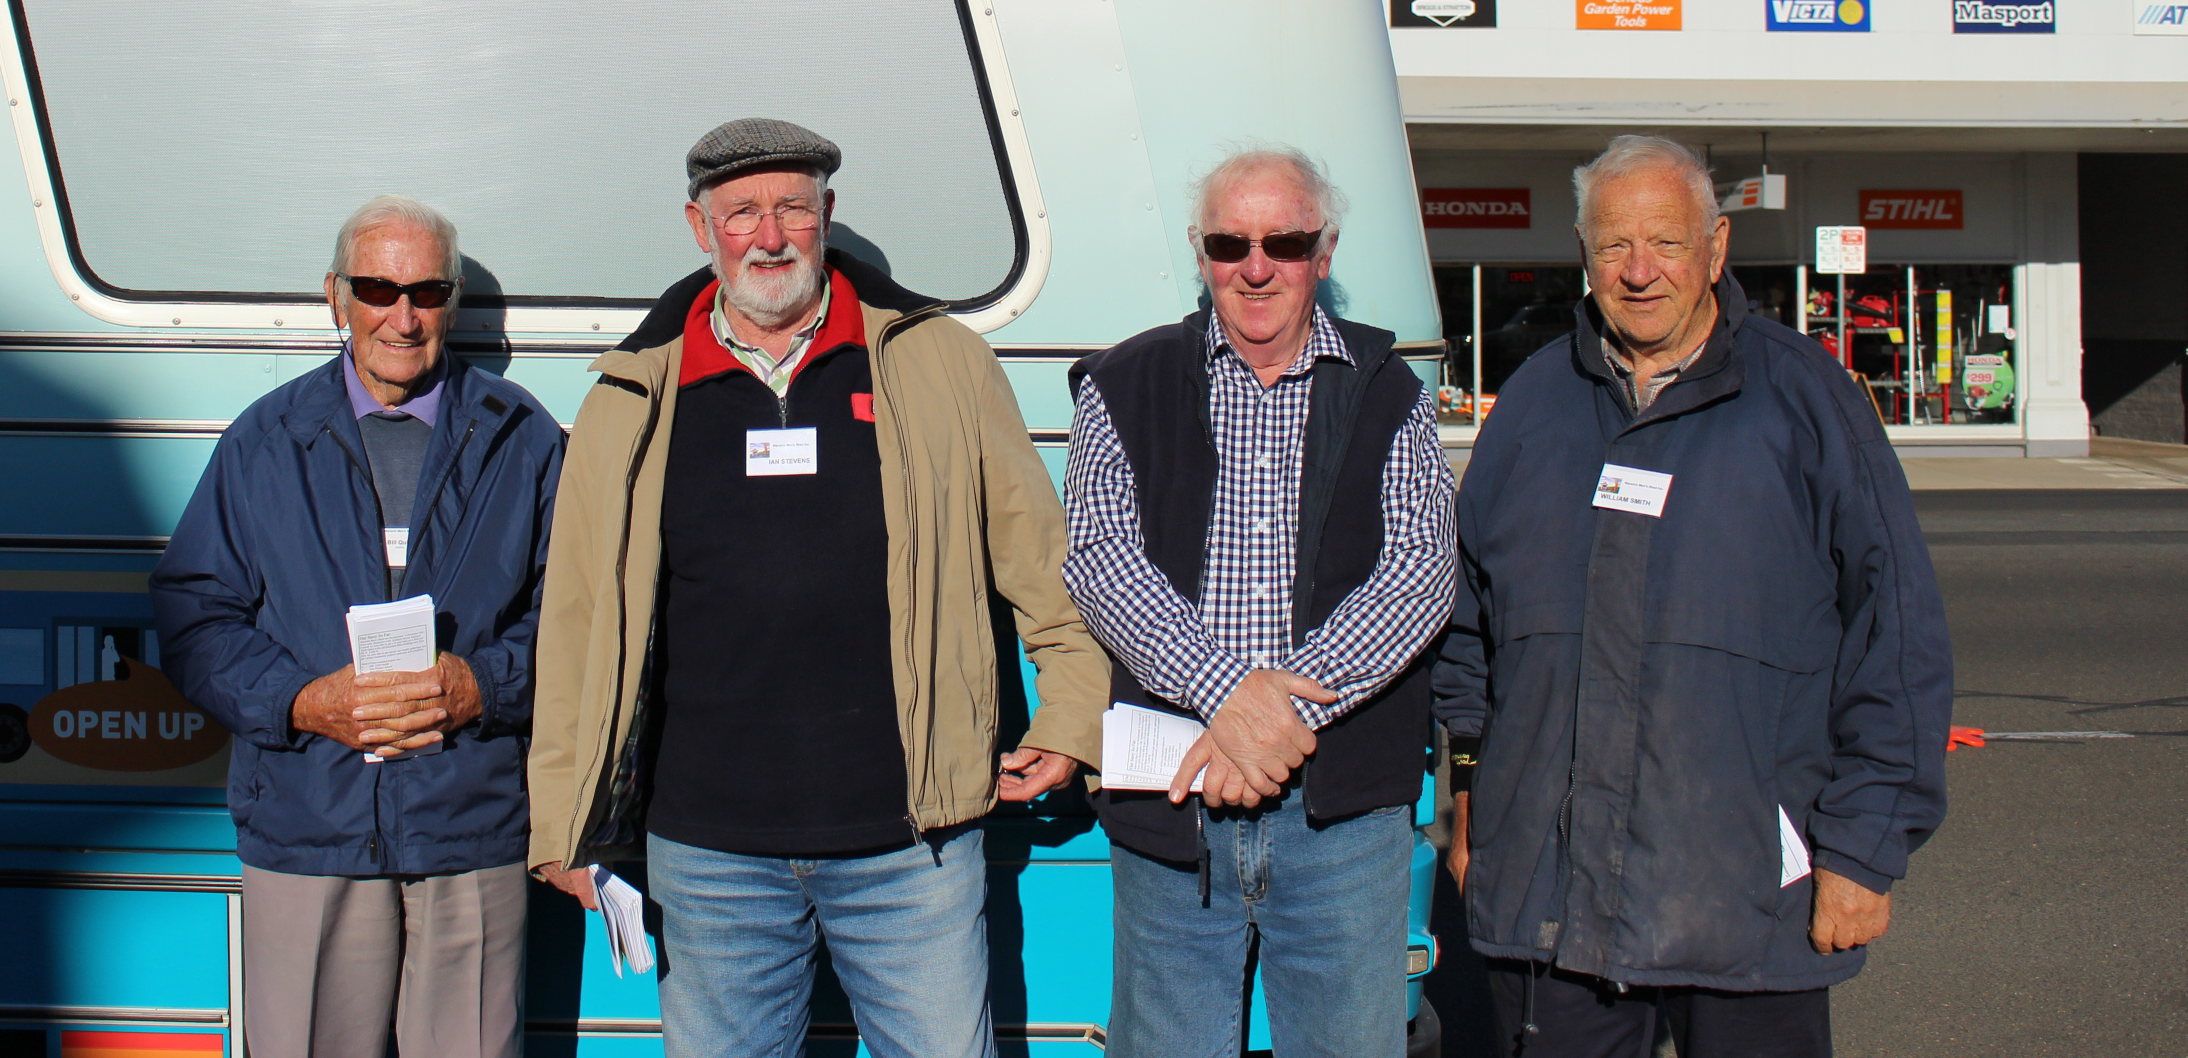 Members of the Warwick Men's Shed came down to greet the bus.